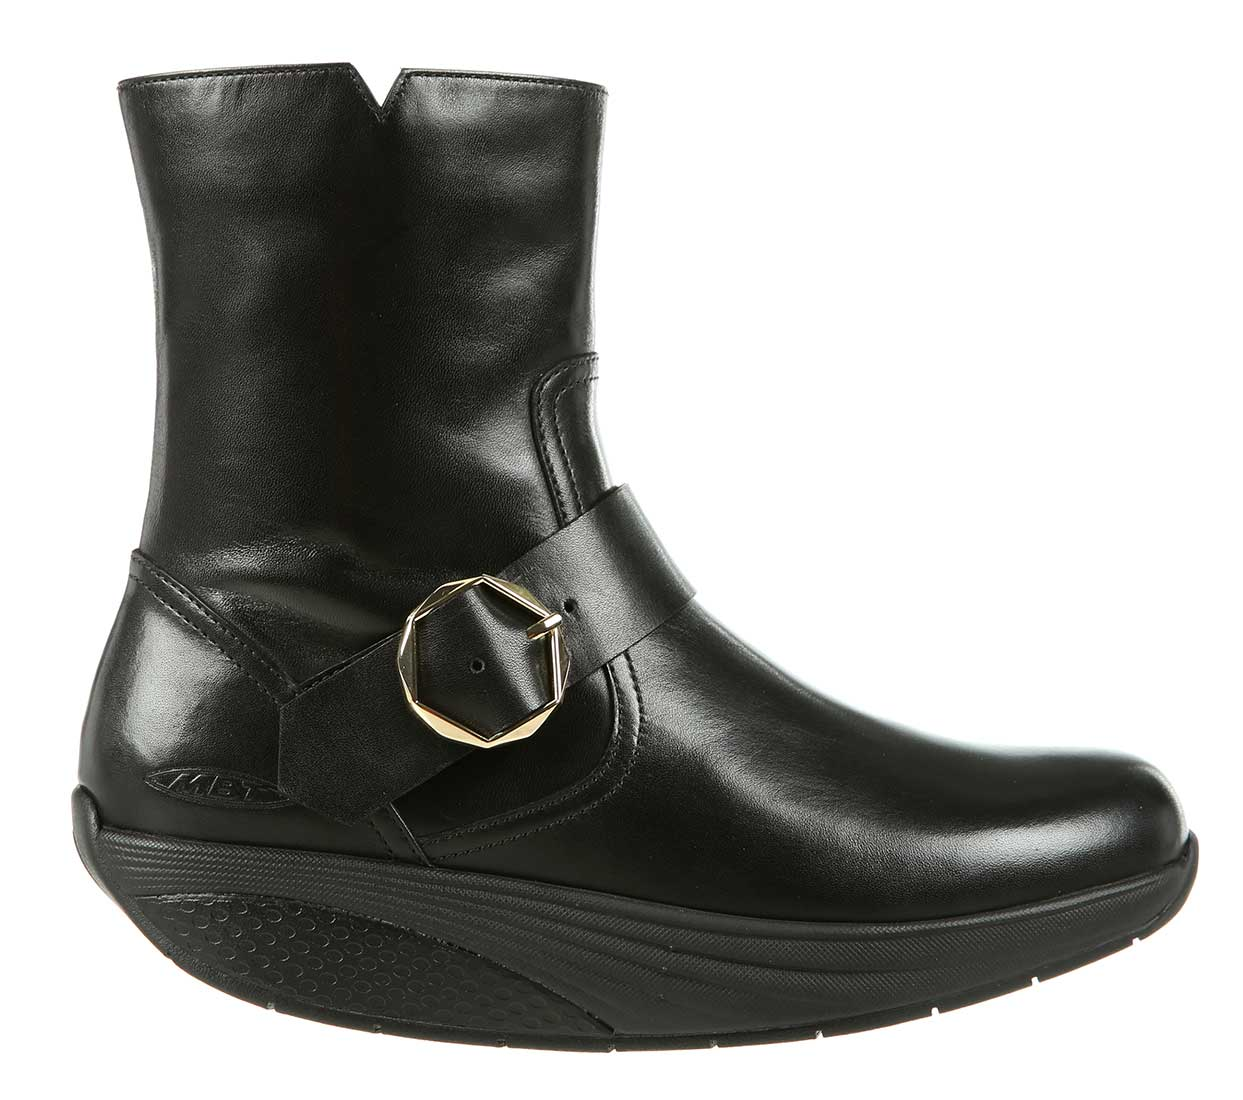 MBT Shoes Women s Magee Dress Mid Cut Boot - 700985 - The MBT Magee is a  zippered mid-cut boot with gold buckle to wear to the office or an evening  out. f3958d0f3